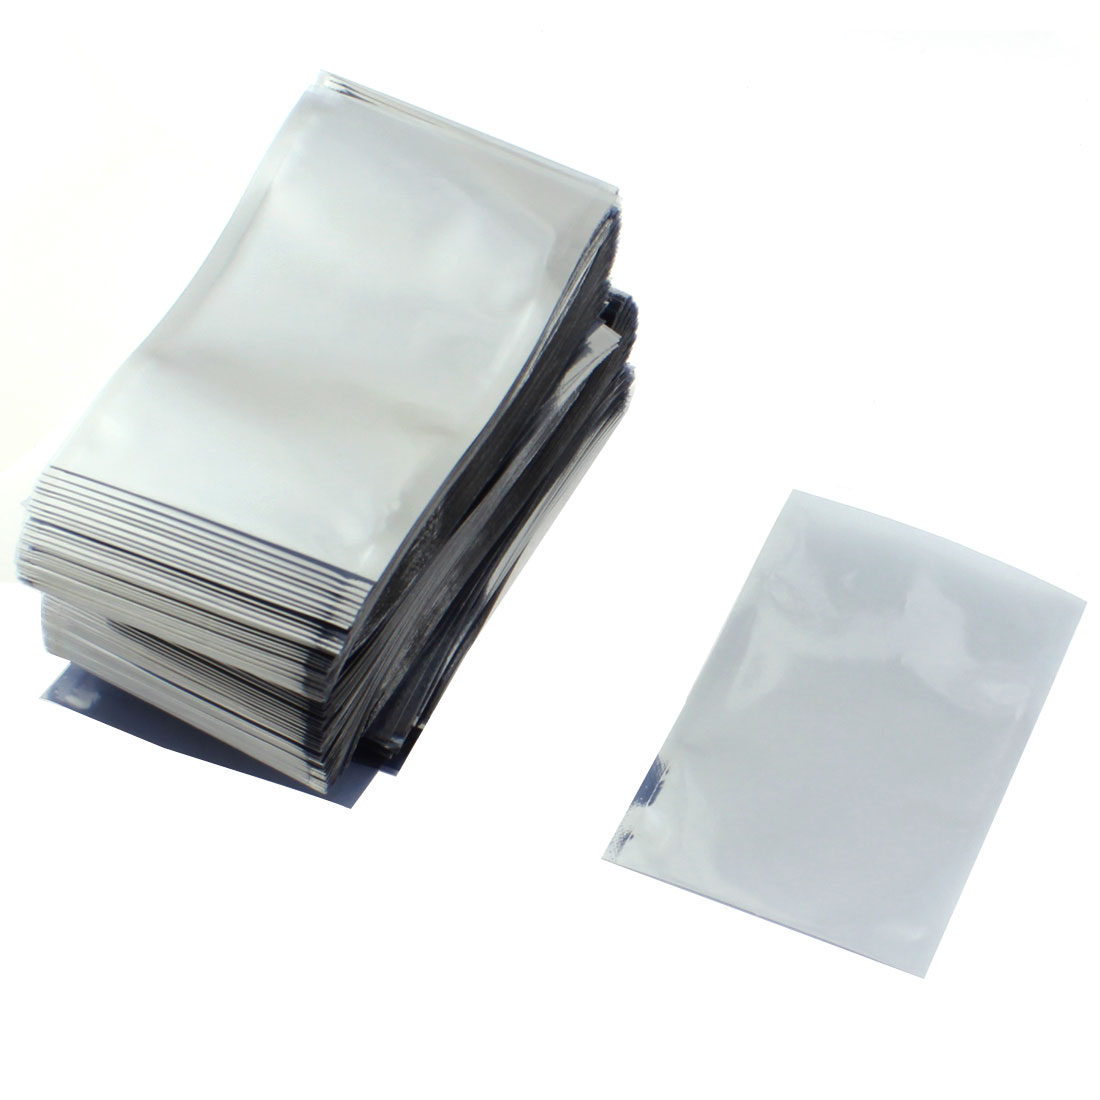 PCB Board Open Top Plastic Shielding Anti Static Bag Holder Protector Packagings 8x12cm 500PCS